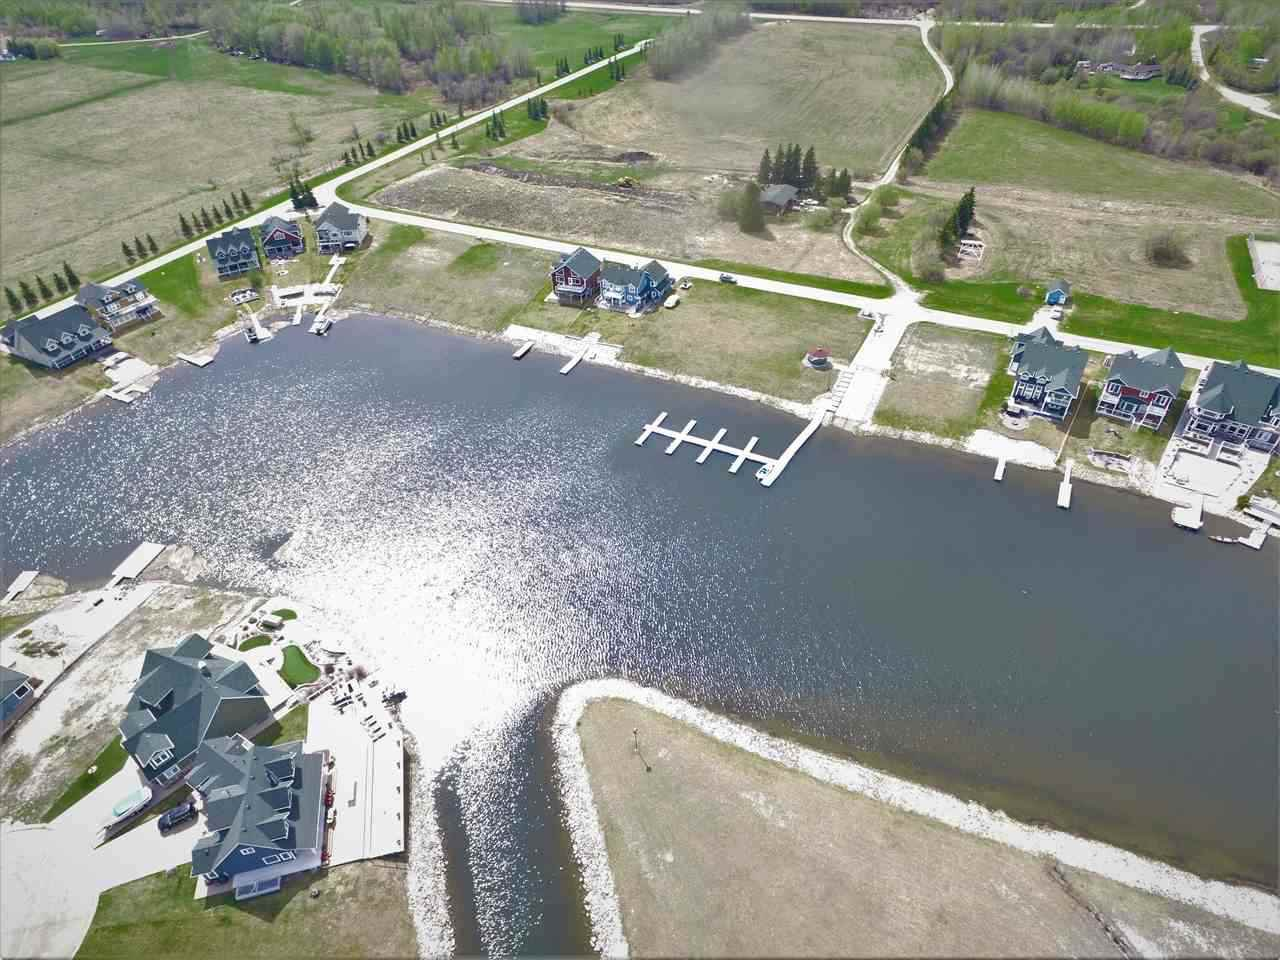 Main Photo: 12 Sunset Harbour: Rural Wetaskiwin County Rural Land/Vacant Lot for sale : MLS®# E4169835